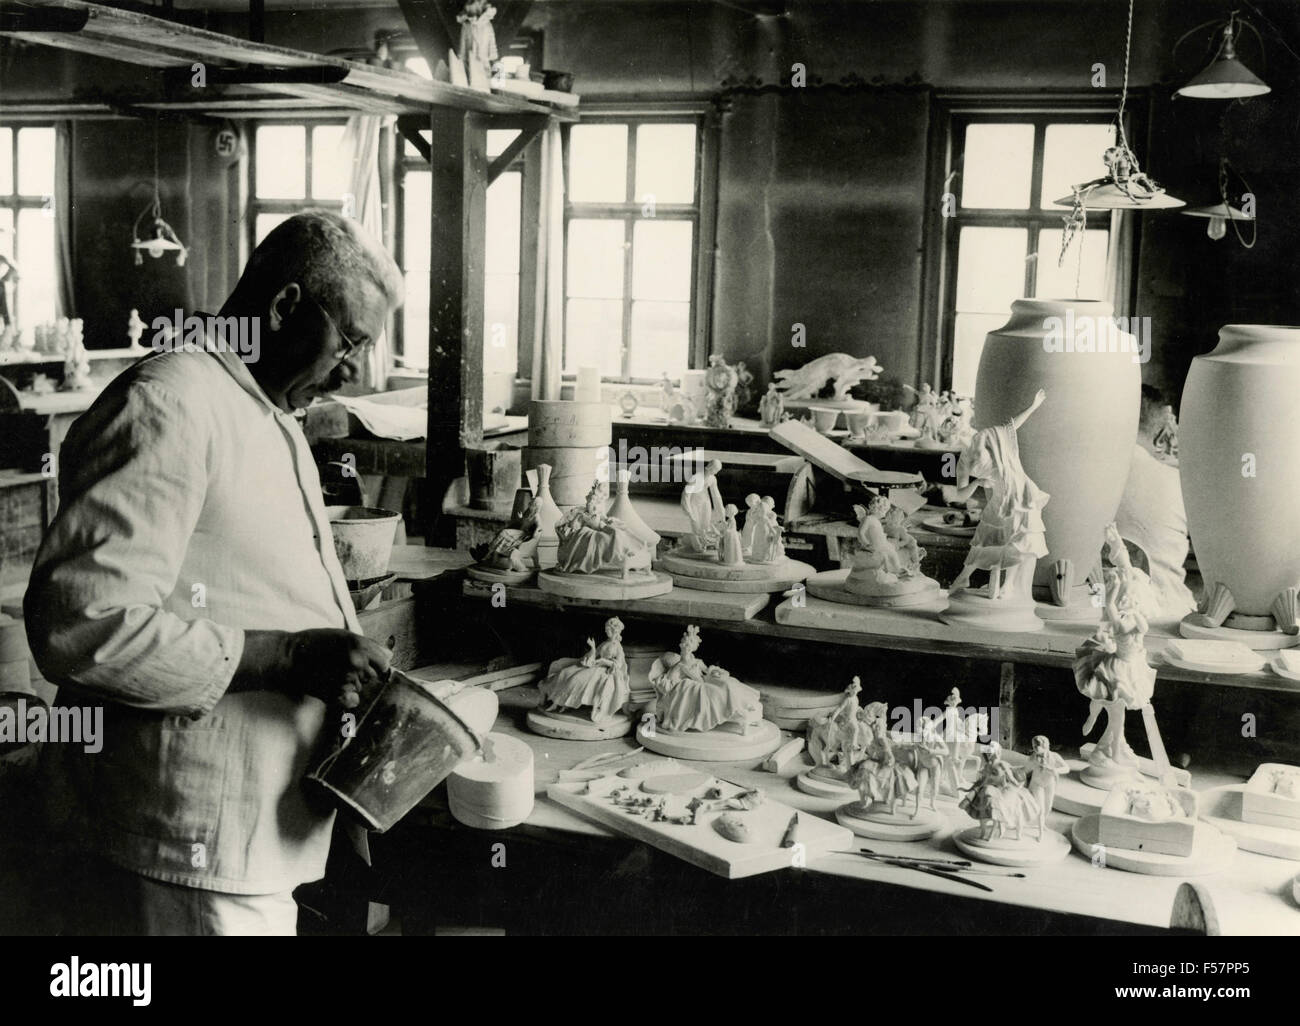 A man prepares porcelain figurines, Italy - Stock Image